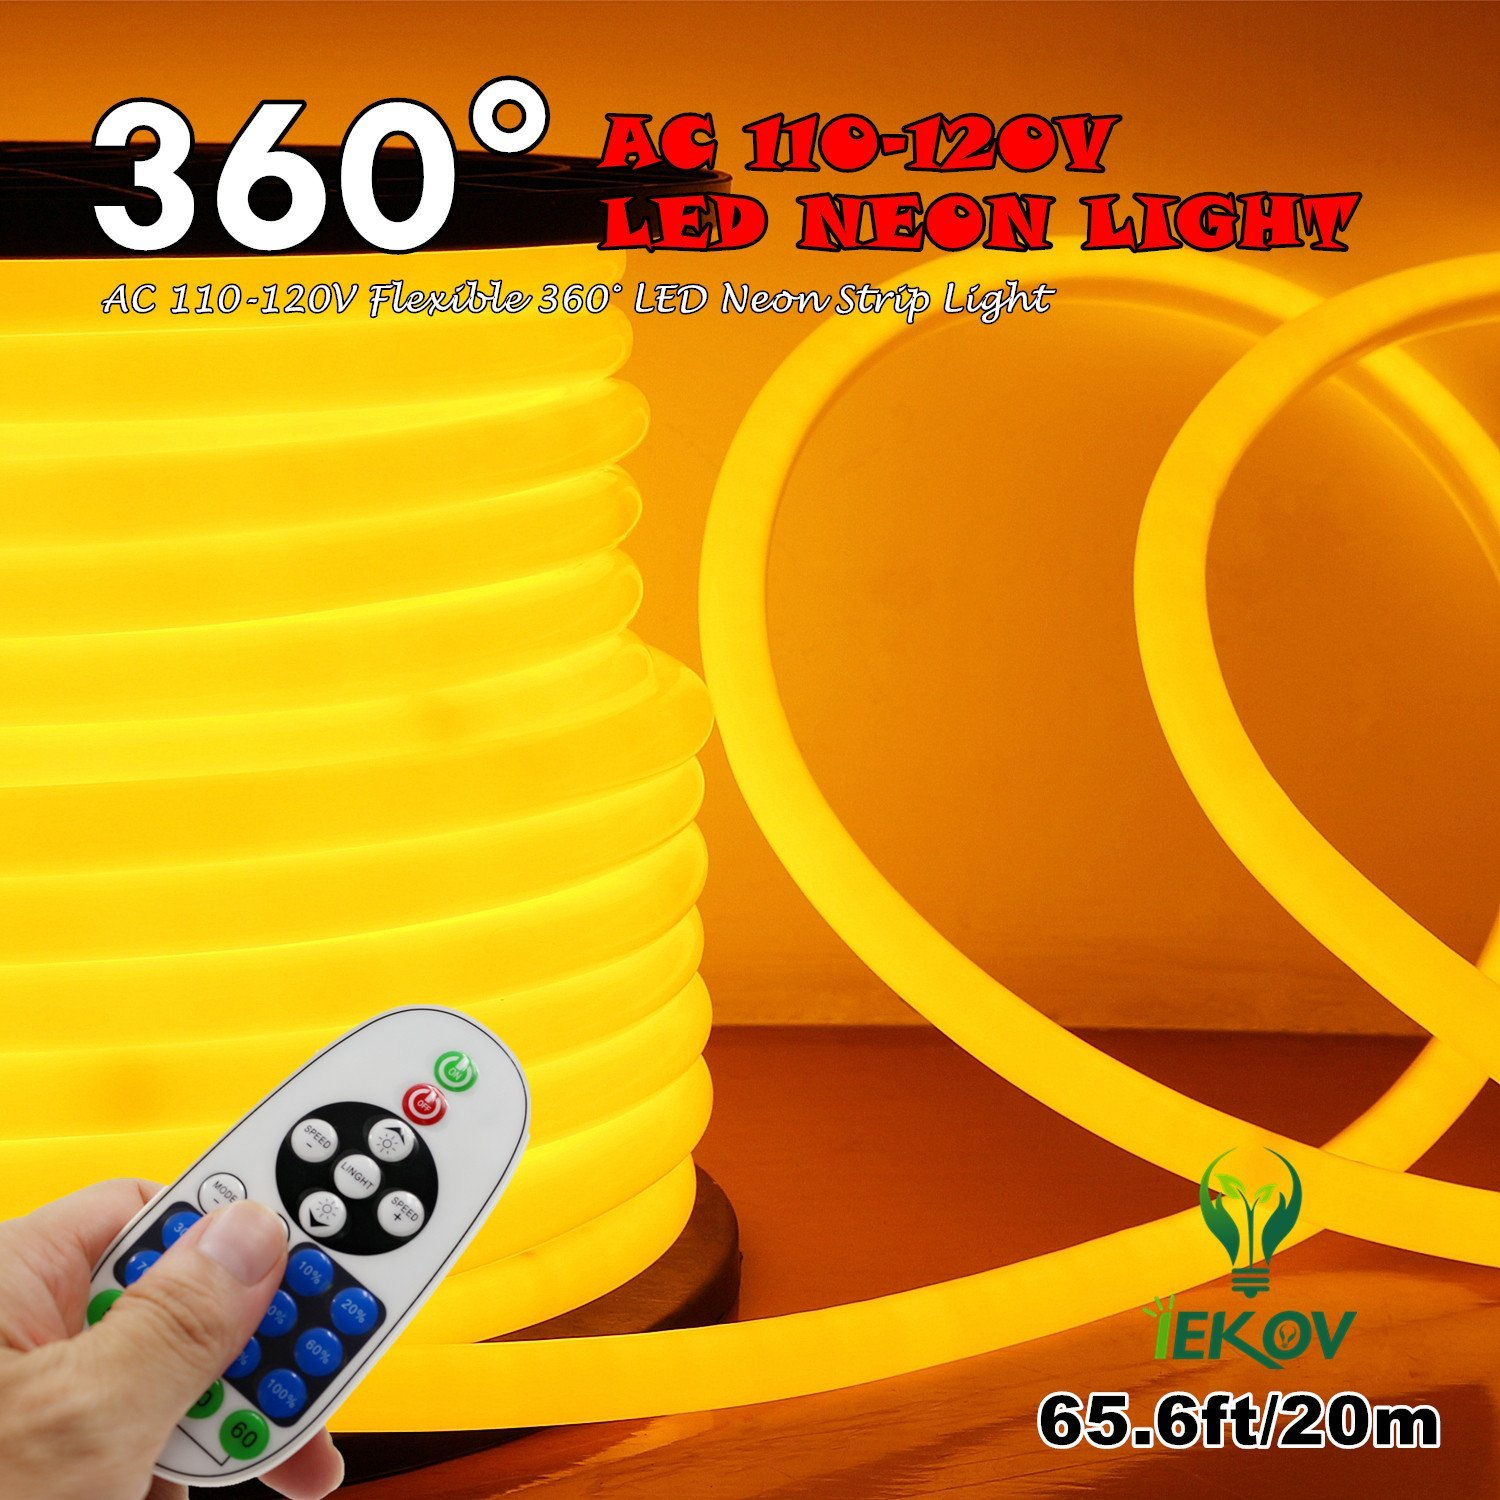 [UPGRADE] 360° LED NEON LIGHT, IEKOV™ AC 110-120V Flexible 360 Degree LED Neon Strip Light, Dimmable & Waterproof NEON LED Rope Light+Remote Controller (65.6ft/20m, Golden Yellow)